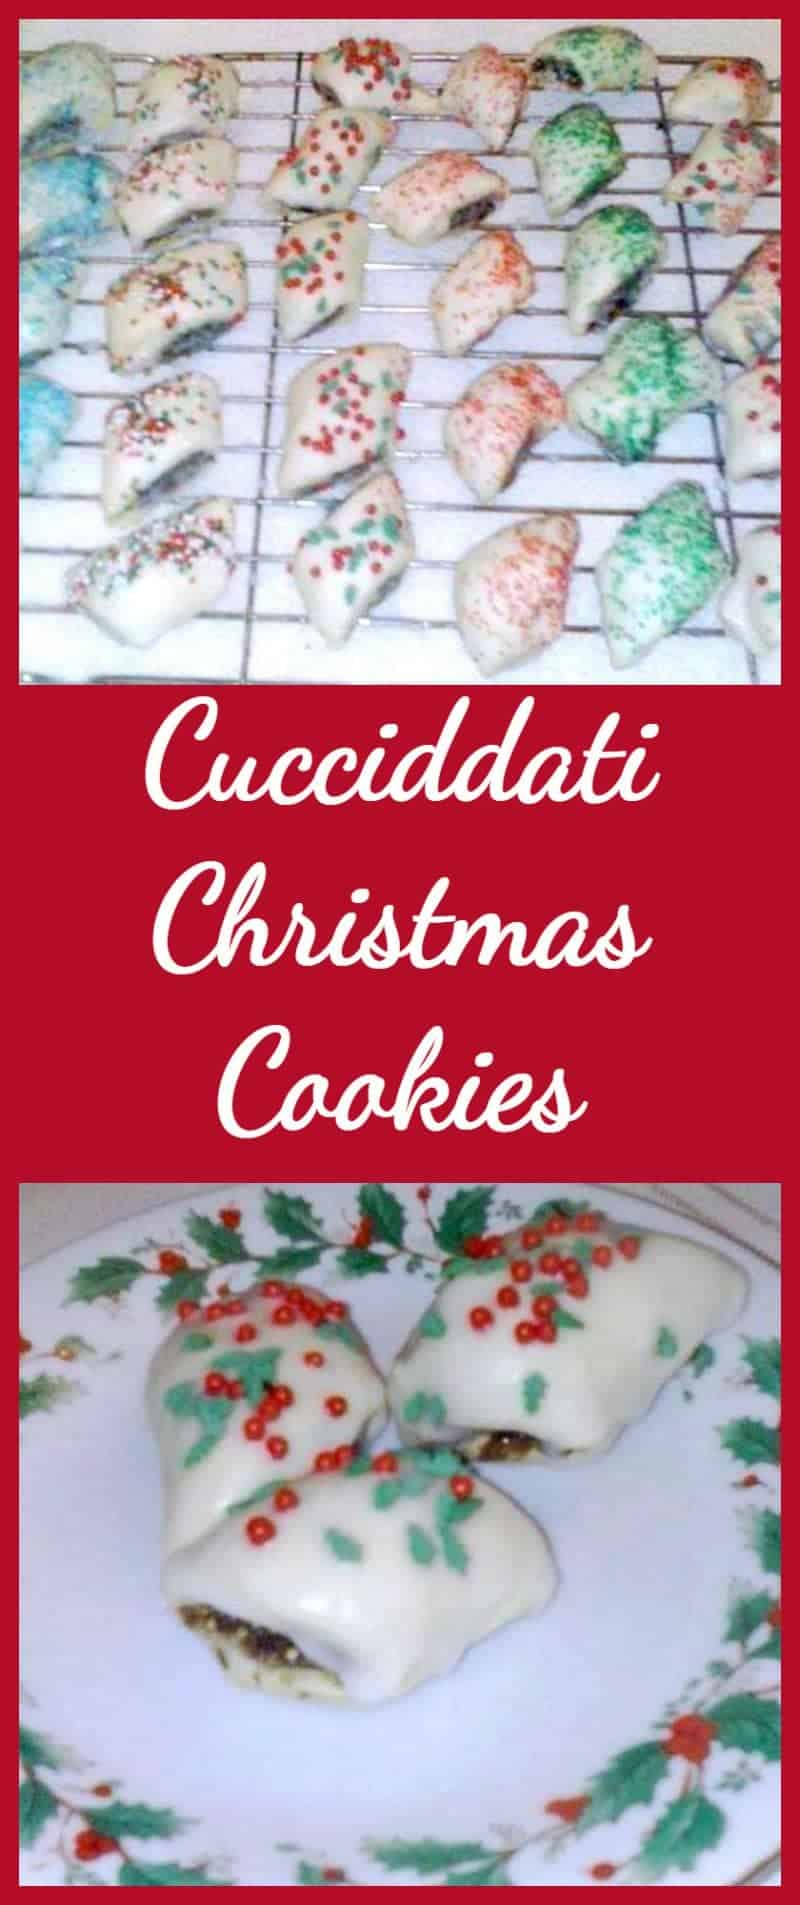 Cucciddati Christmas Cookies, A wonderful Italian cookie recipe and perfect for Christmas